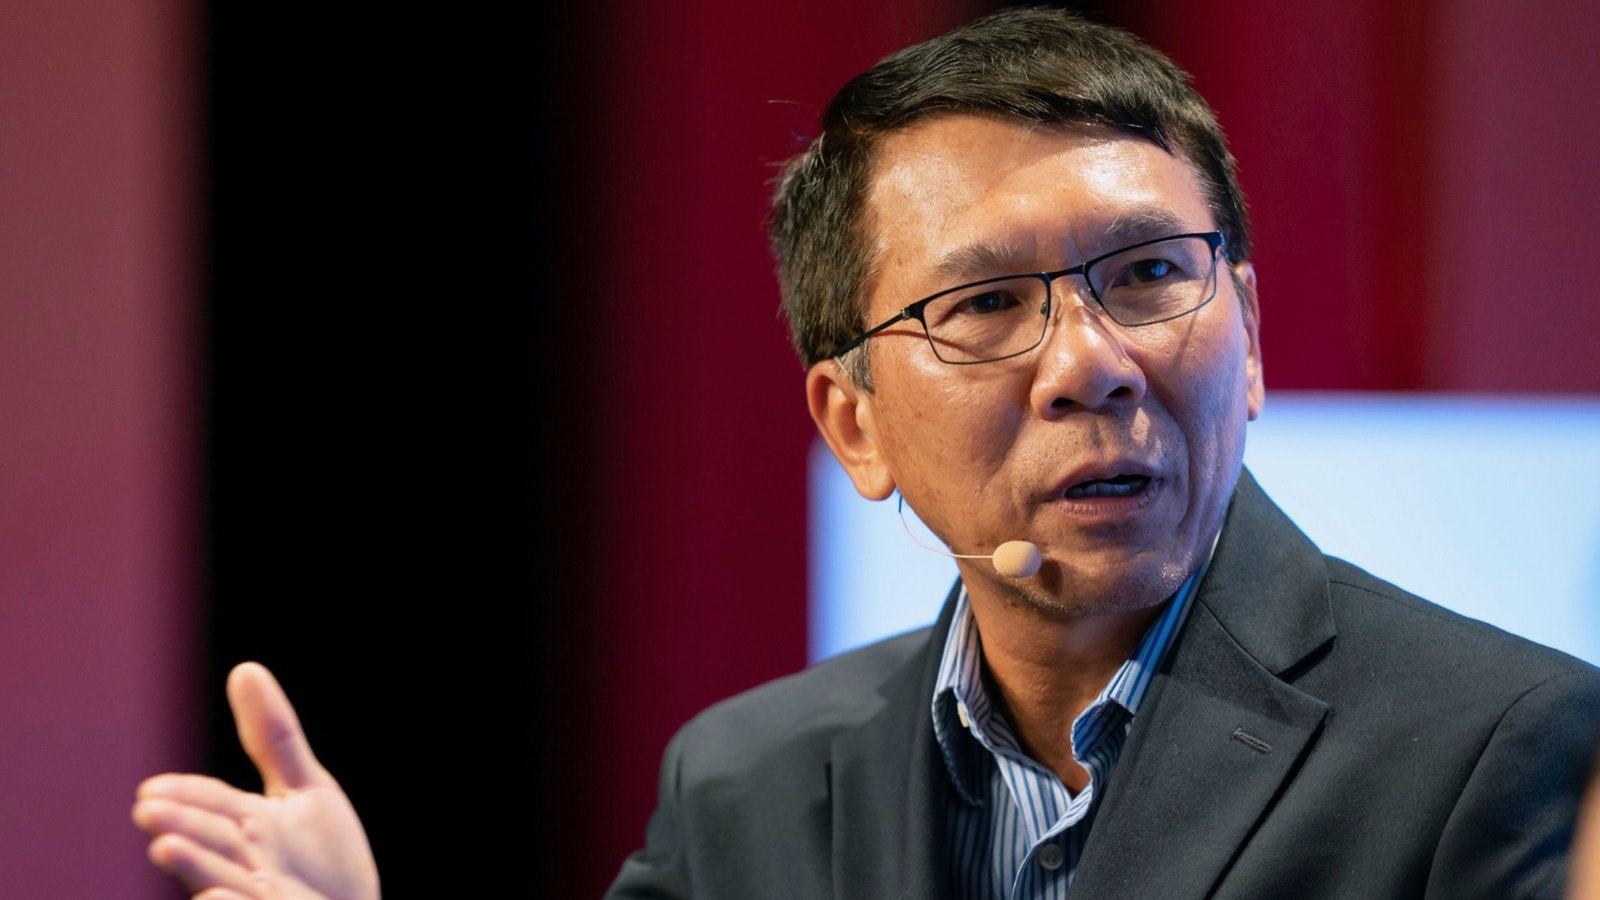 Uber CTO Thuan Pham. Photo by Bloomberg